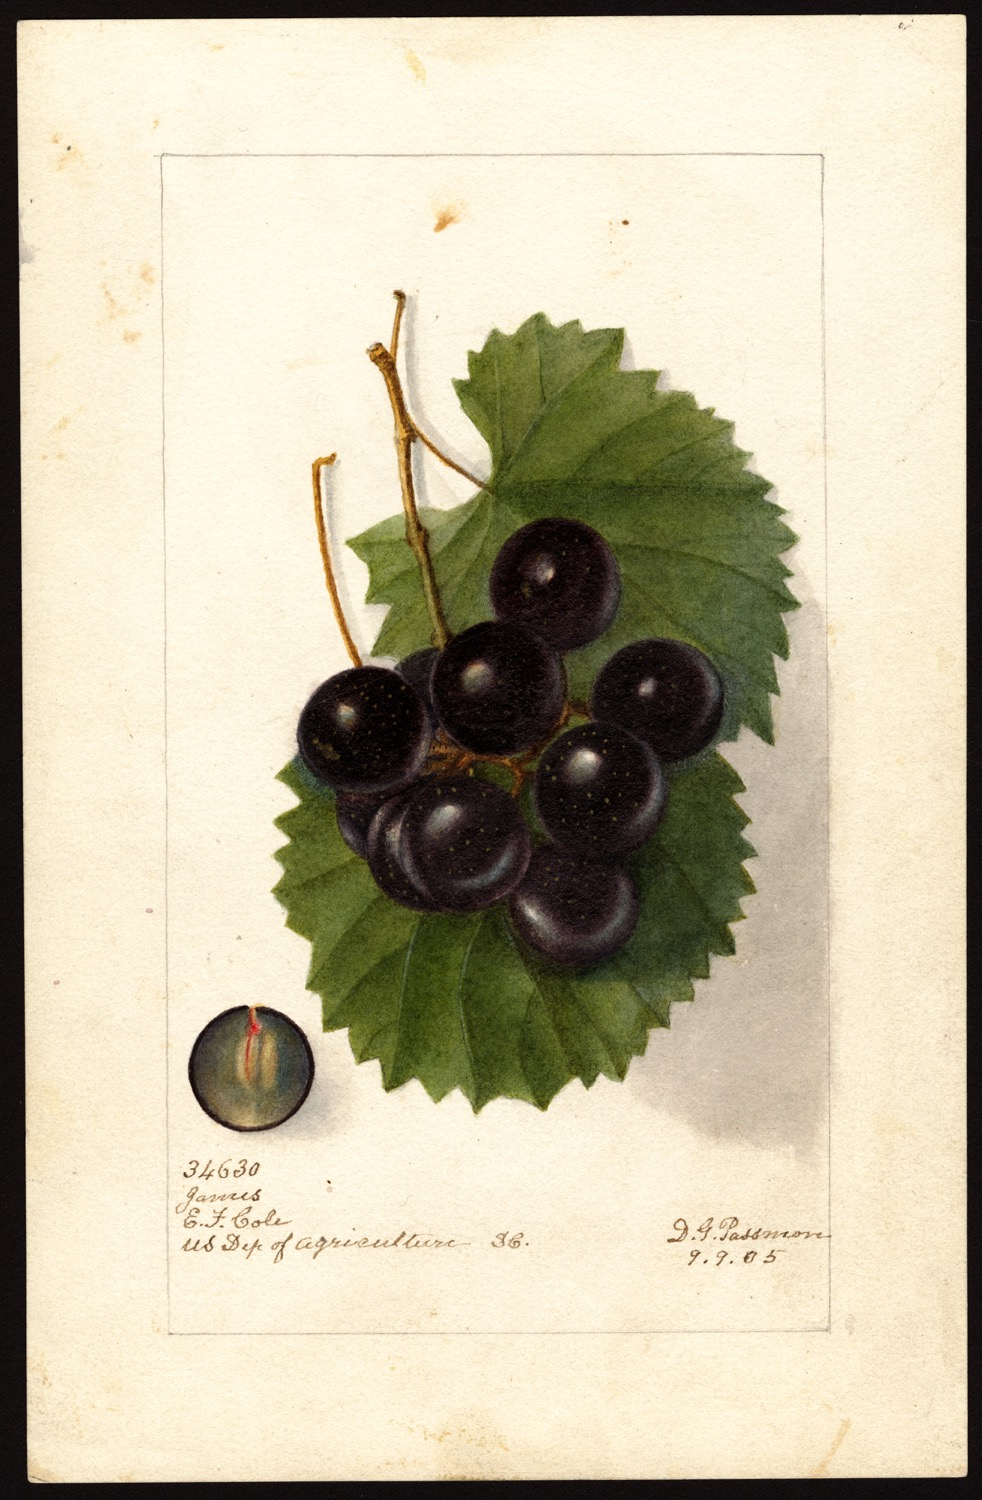 Deborah Griscom Passmore, uva, 1905, (fonte: U.S. Department of Agriculture Pomological Watercolor Collection. Rare and Special Collections, National Agricultural Library, Beltsville, MD 20705)